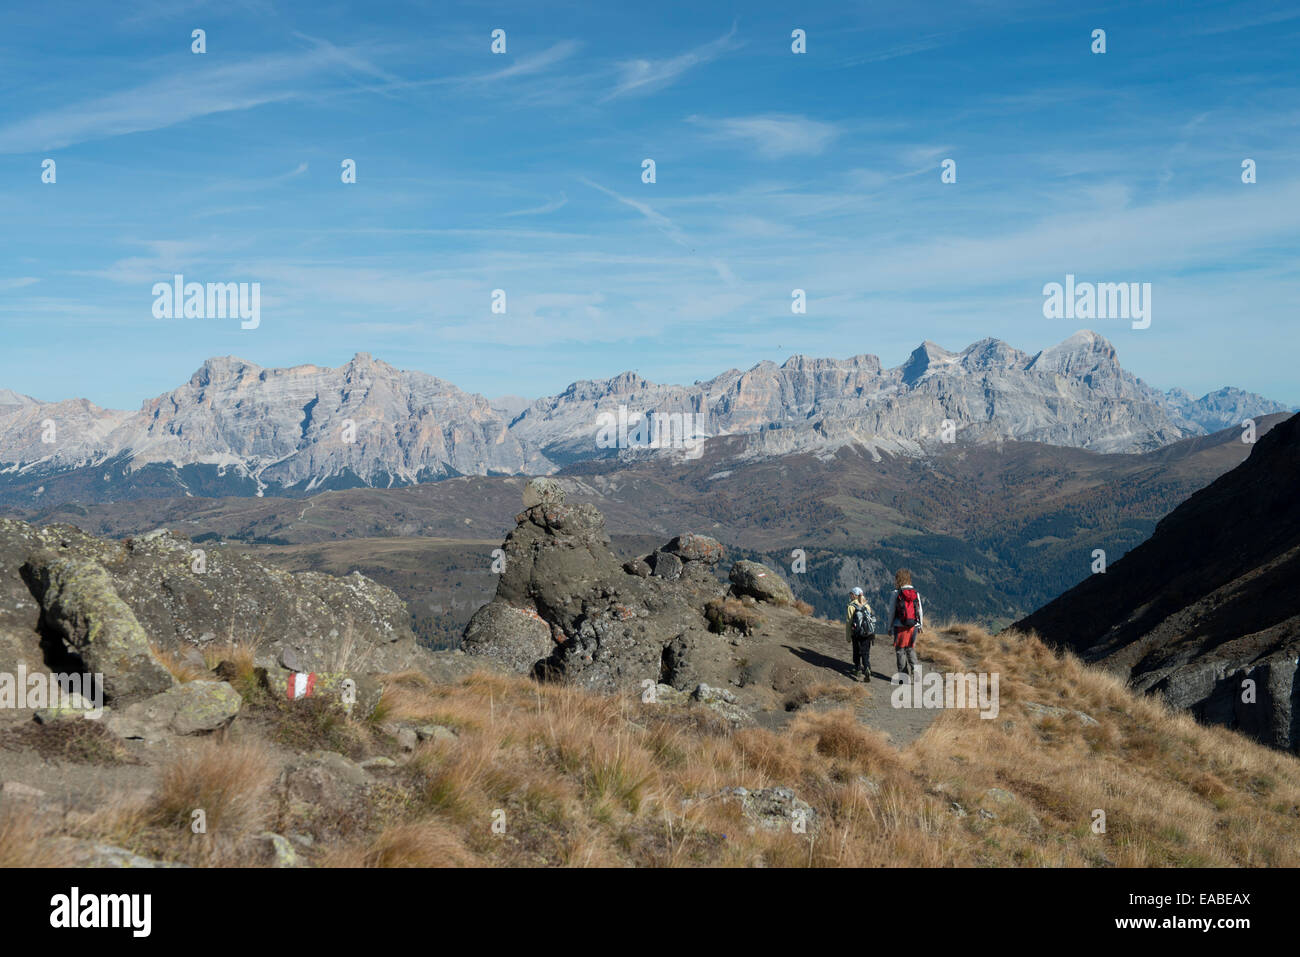 Woman with girl hiking on alpine track in the Dolomites Frau und Kind wandern auf Steig in Dolomiten - Stock Image